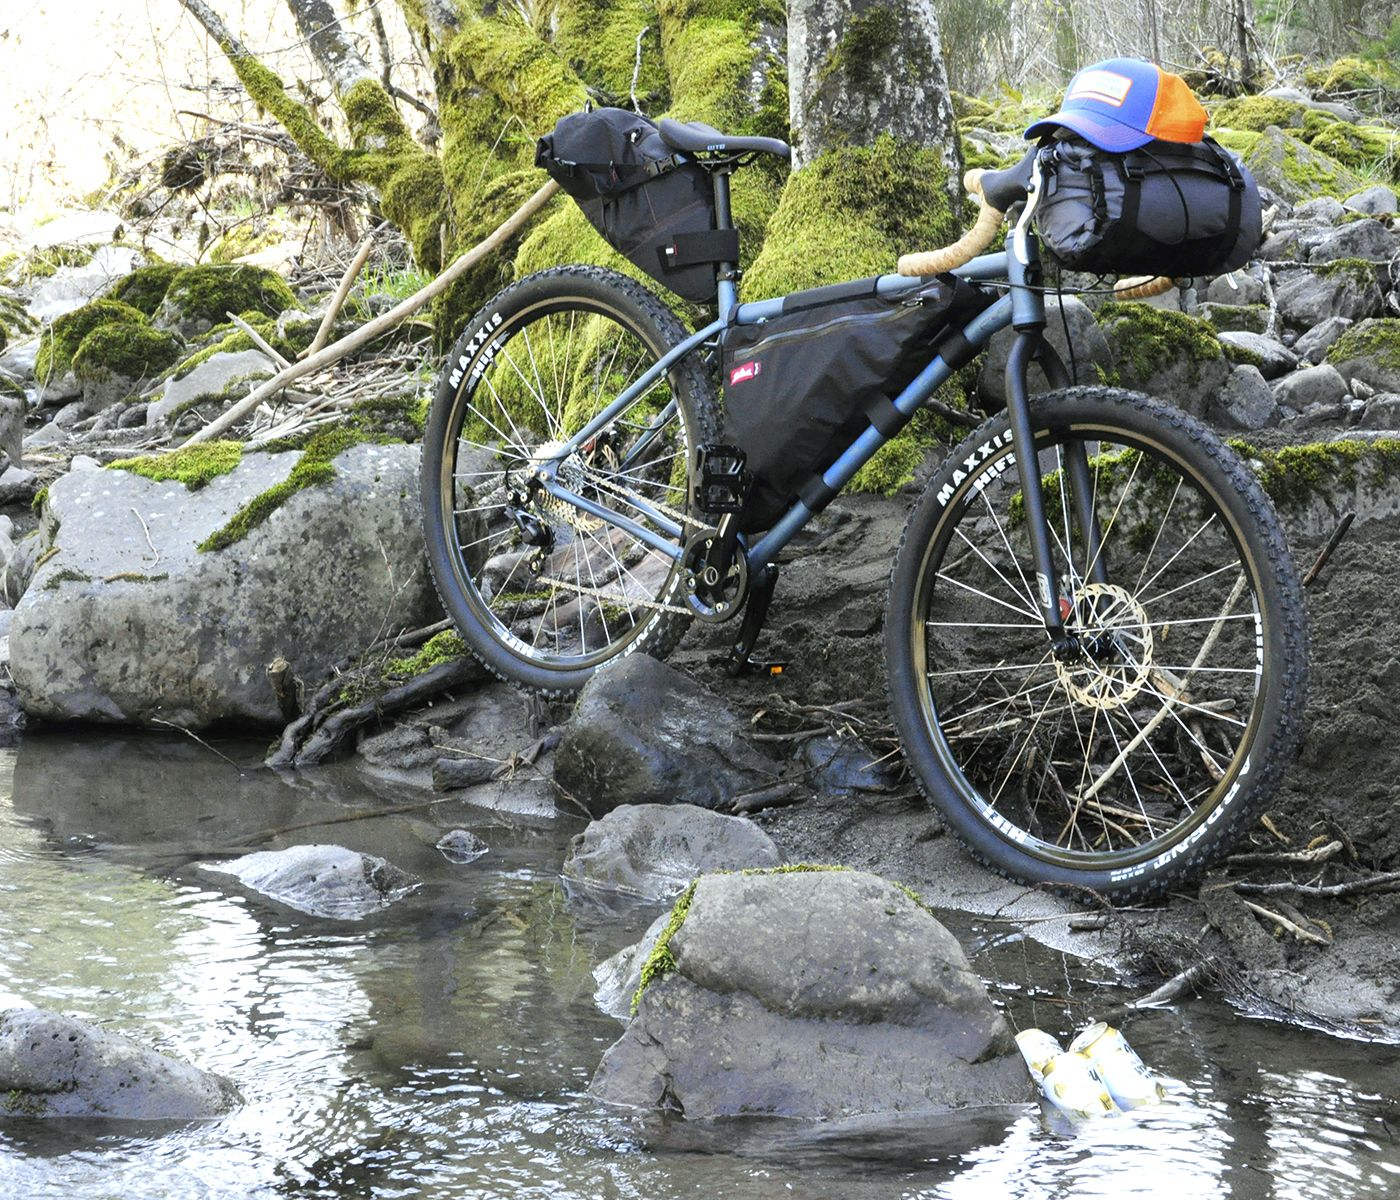 The Bikepacking Unit Bikepacking Mountain Bike Tour Bike Camping